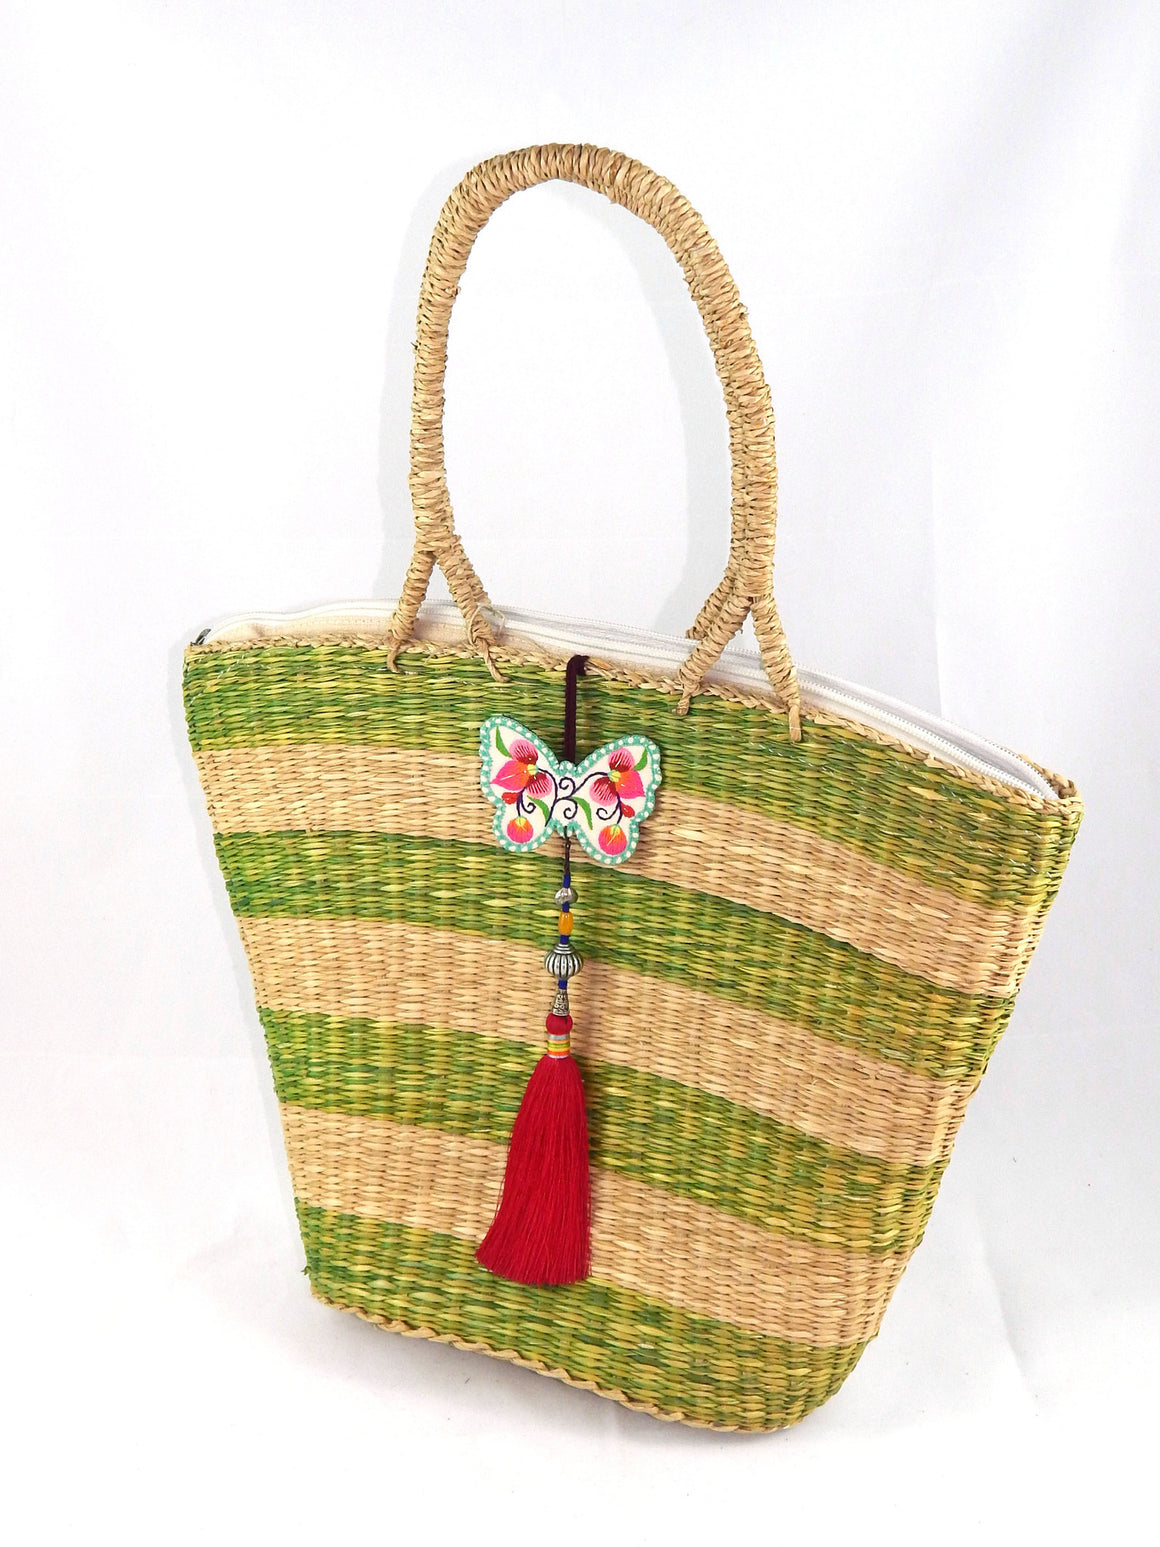 Bamboo and Hemp Purses